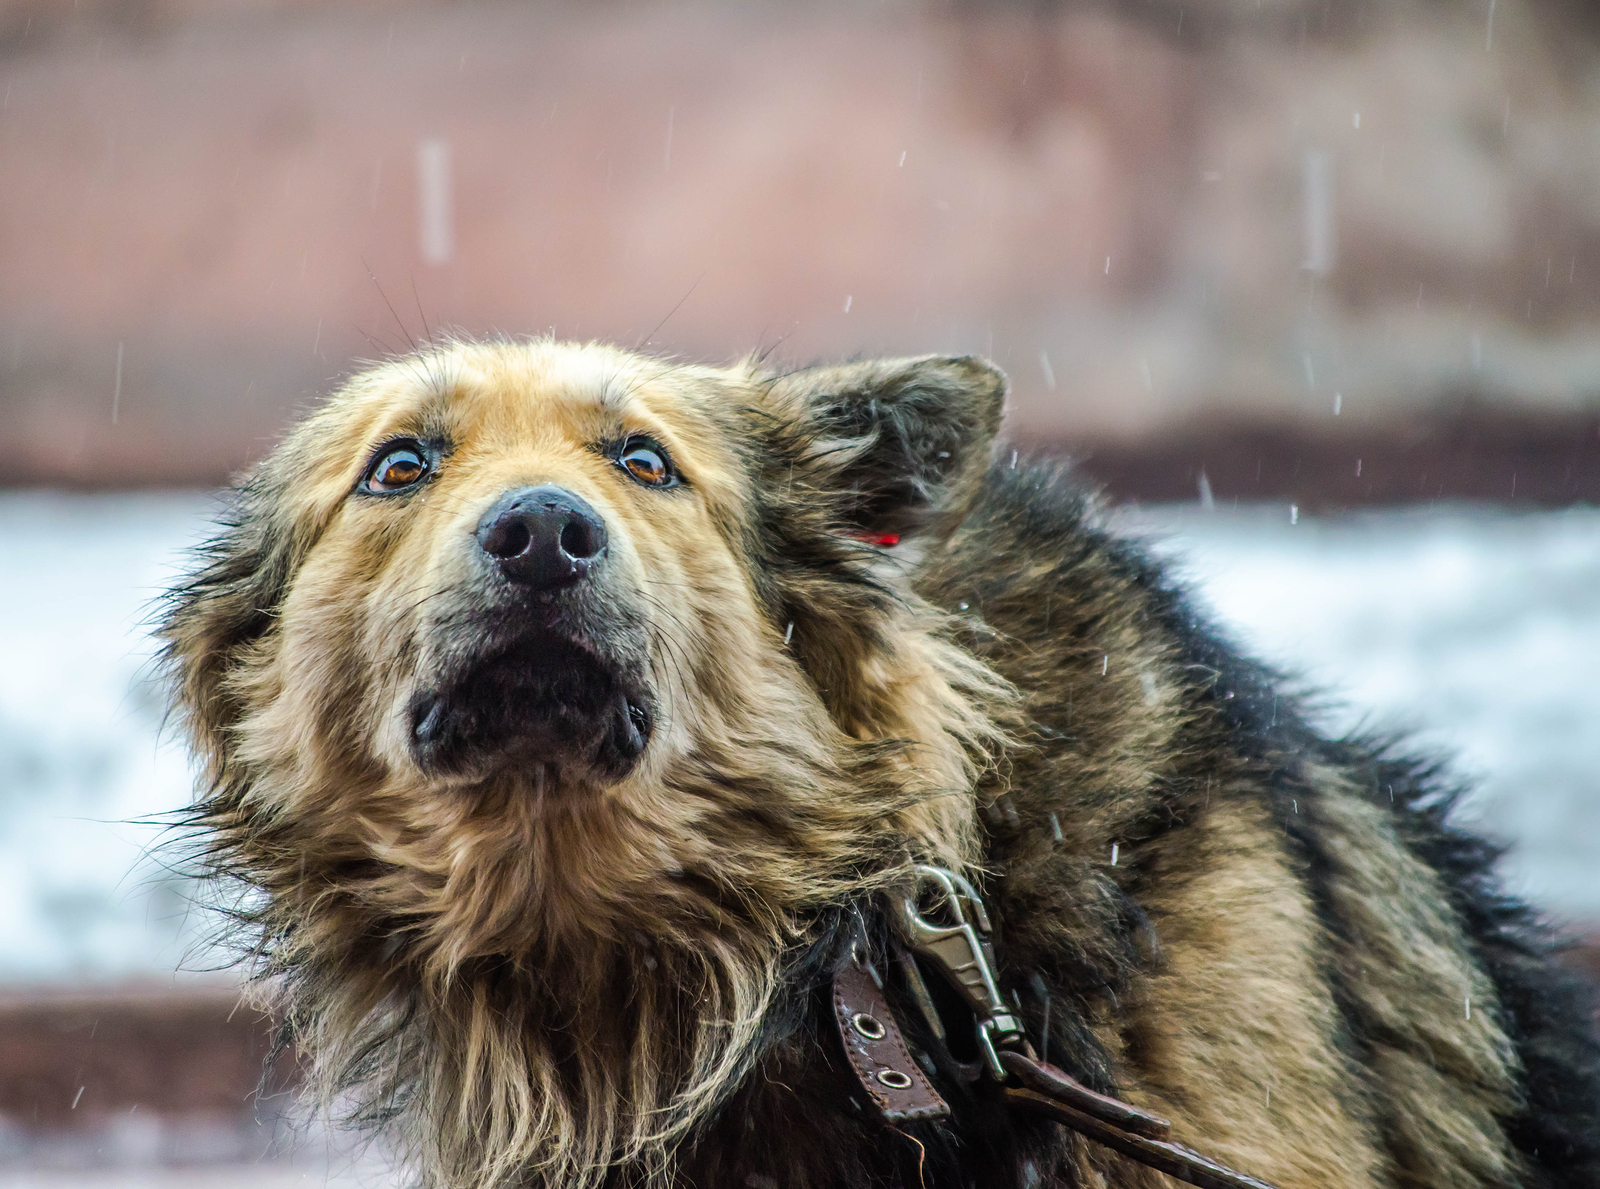 in the rain a fluffy large dog in a collar with a leash looks in fear up pressing his ears